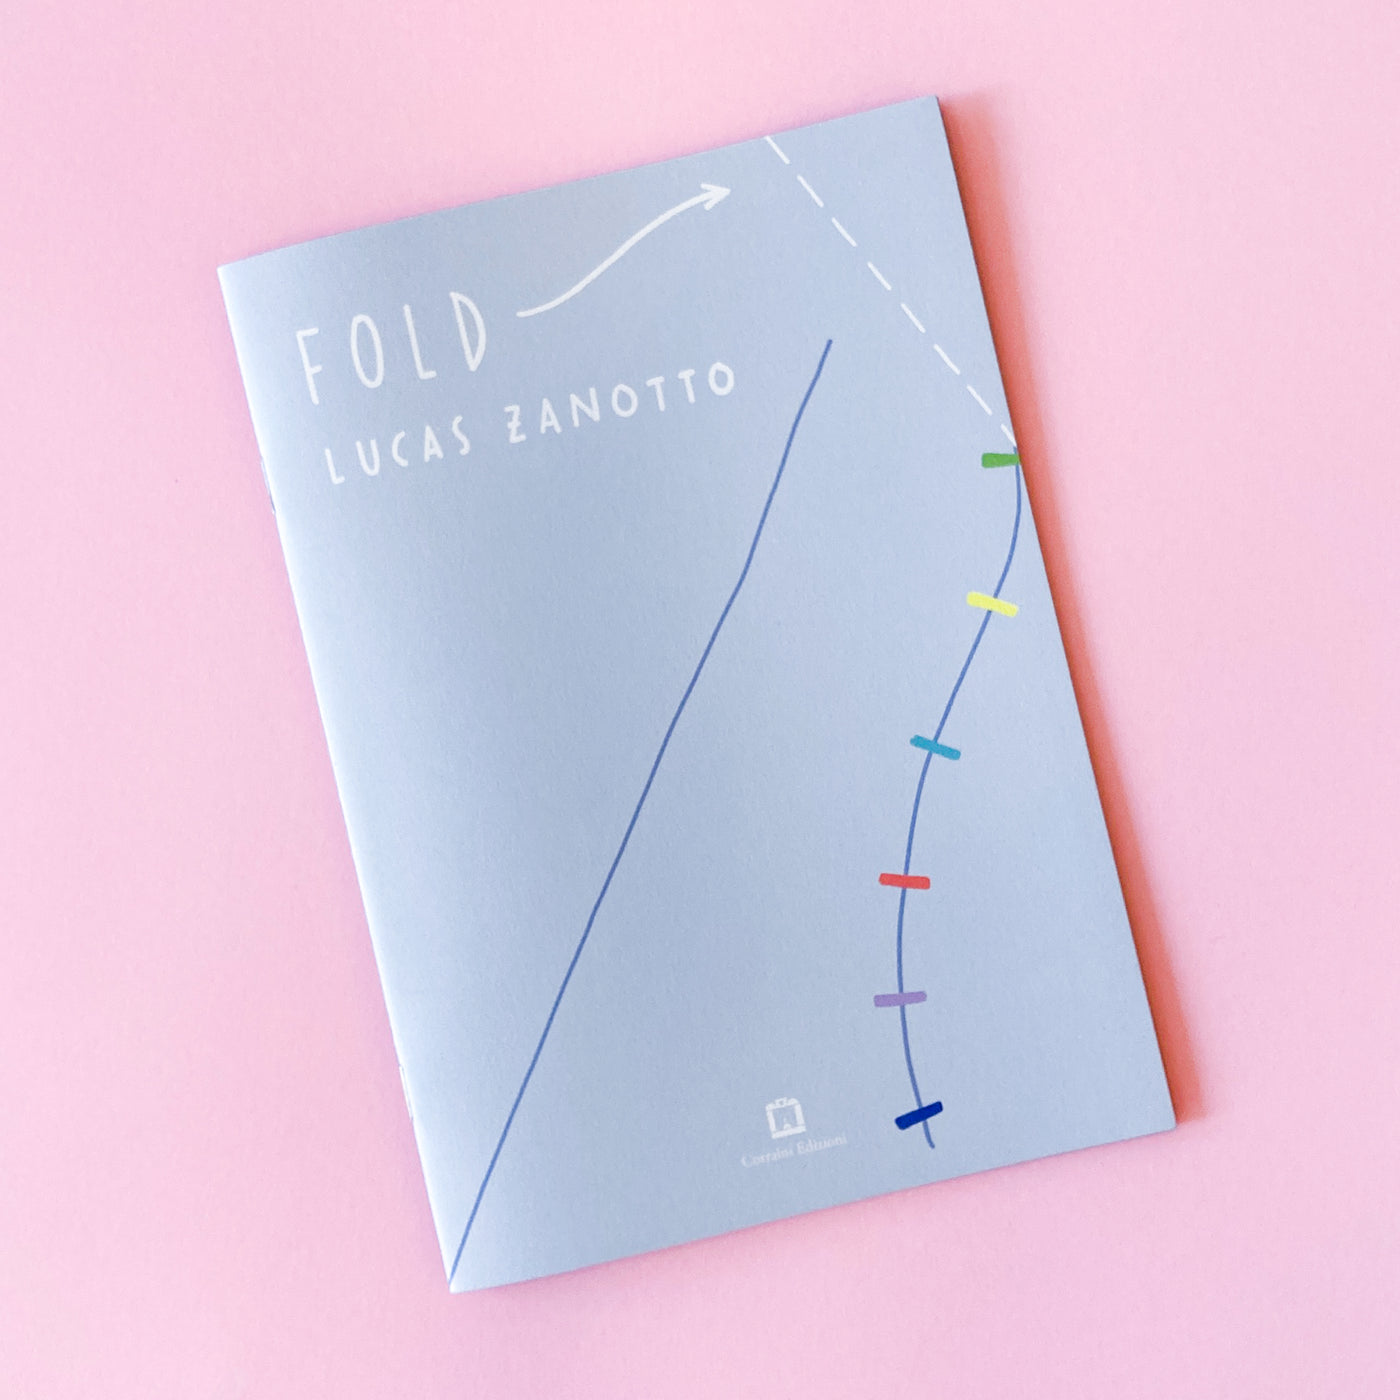 Fold by Lucas Zanotto